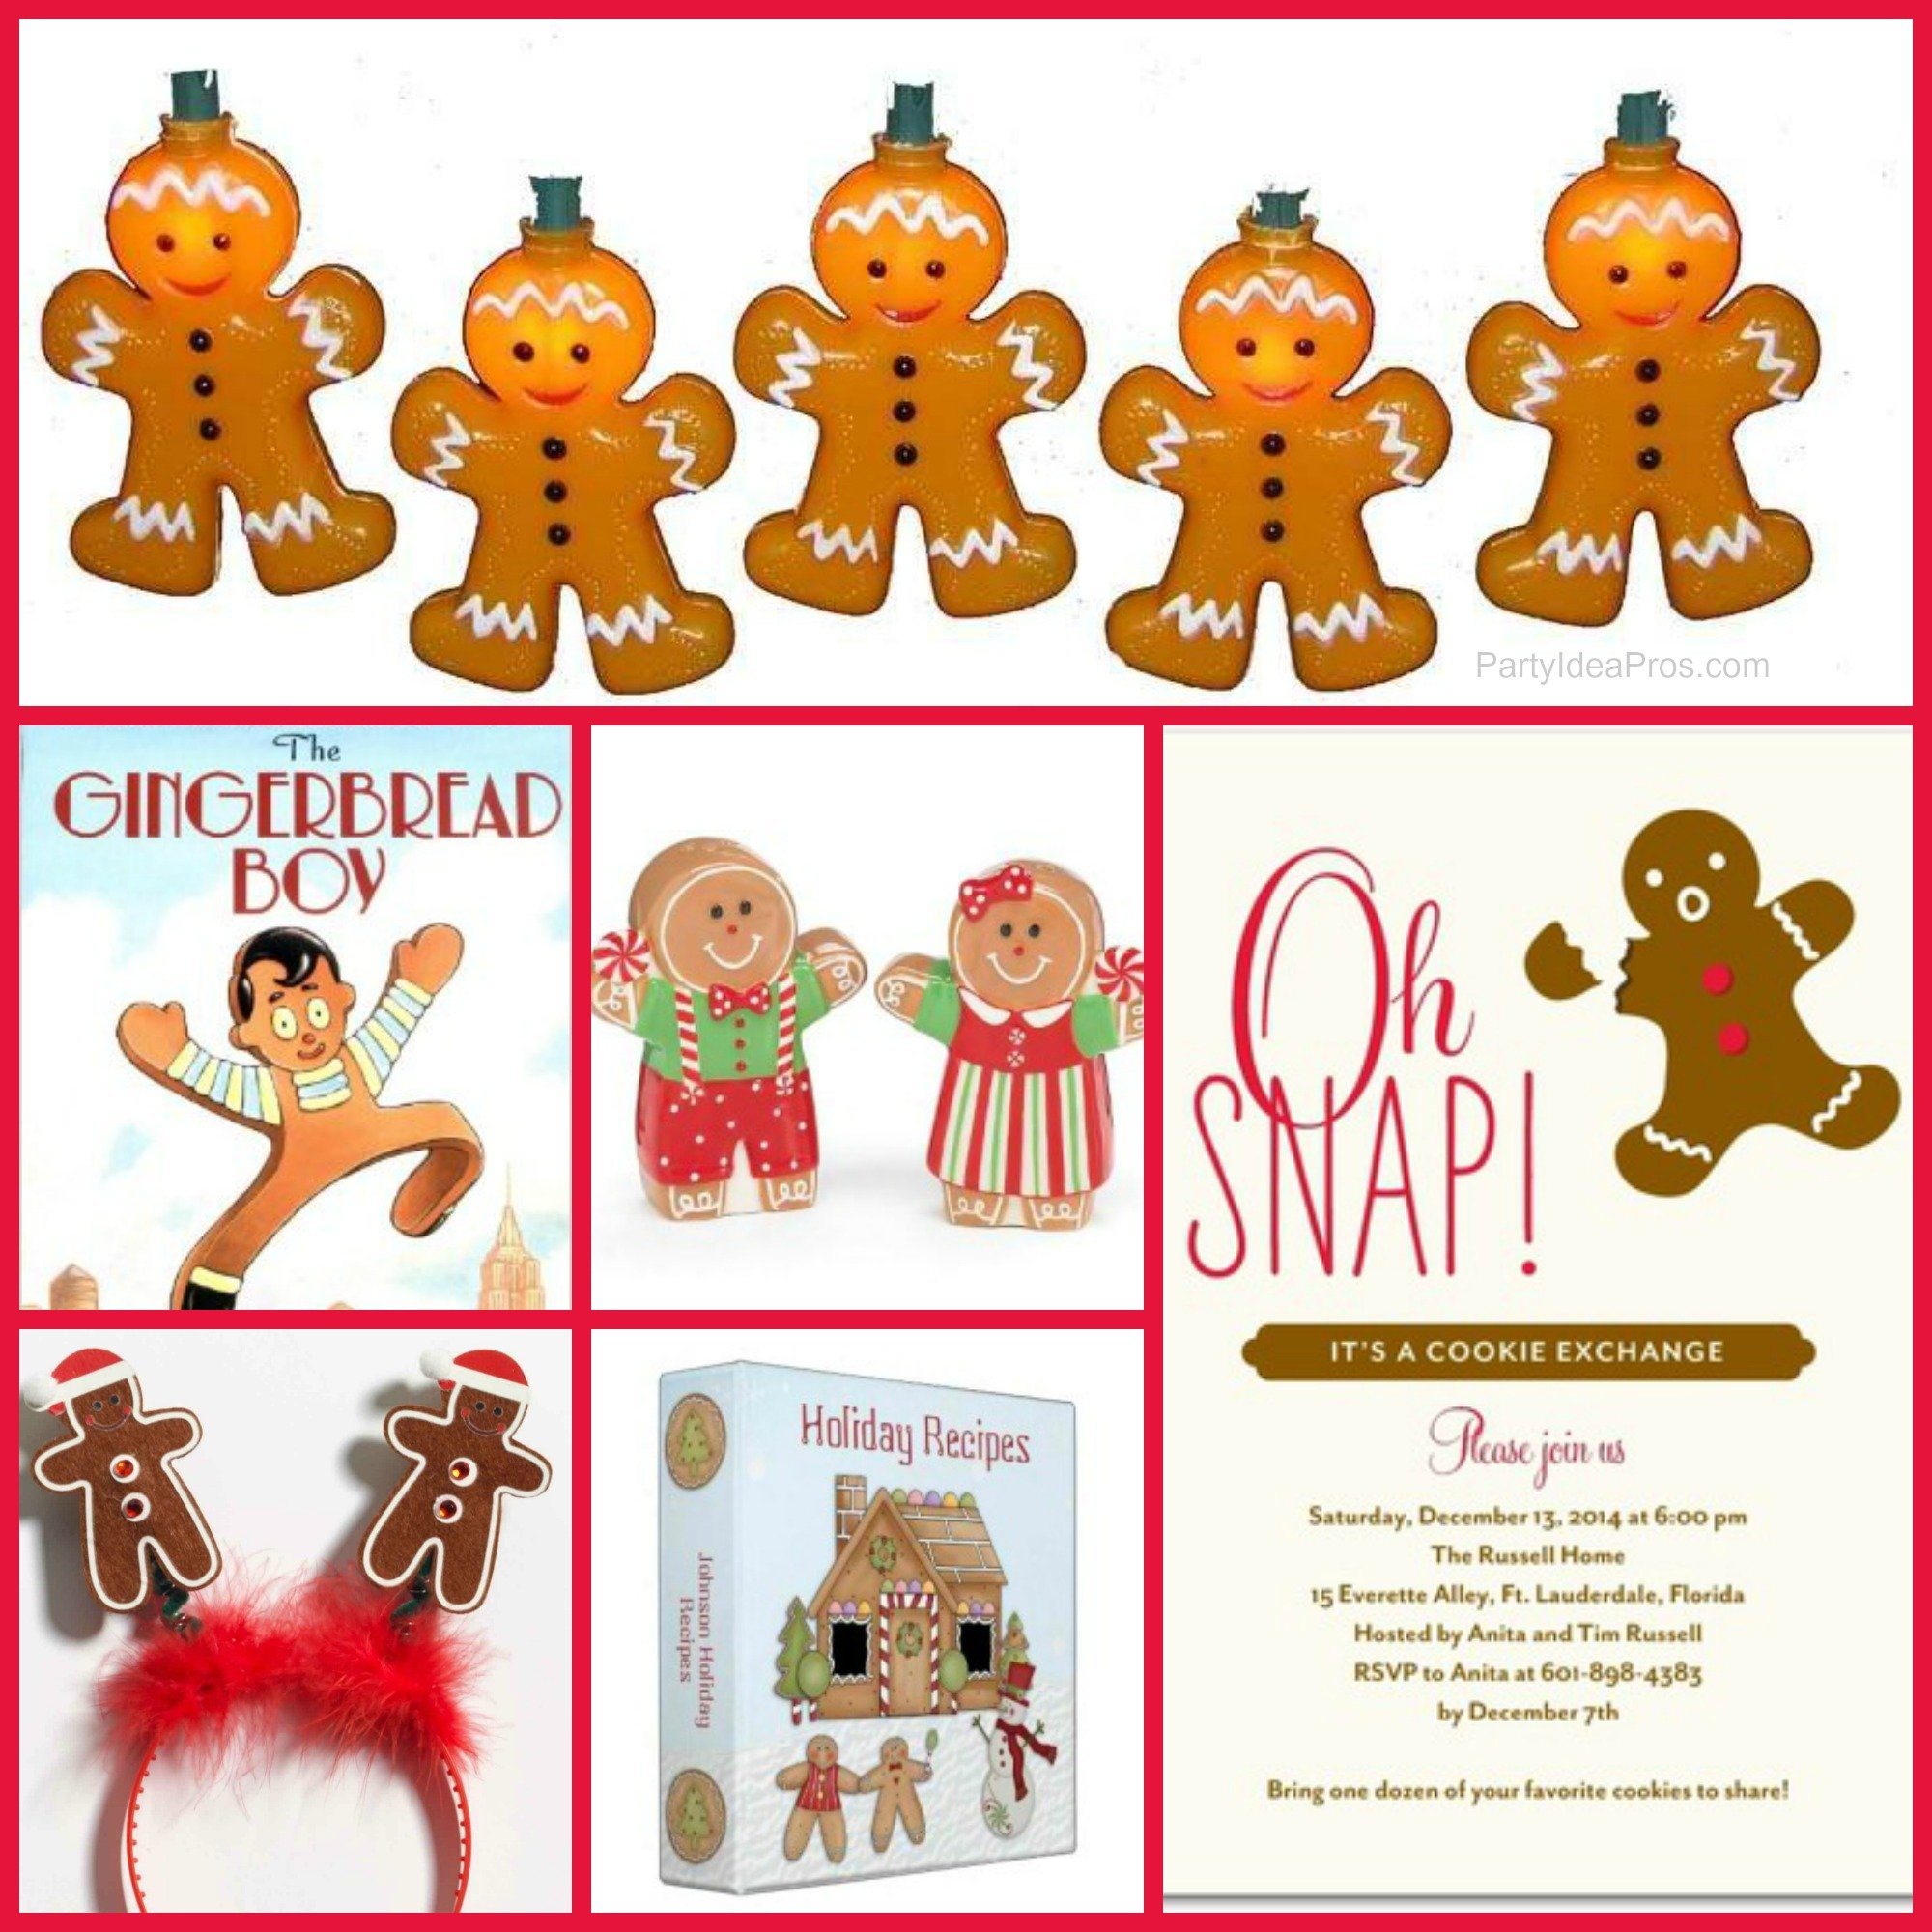 Gingerbread Party Planning Ideas & Supplies